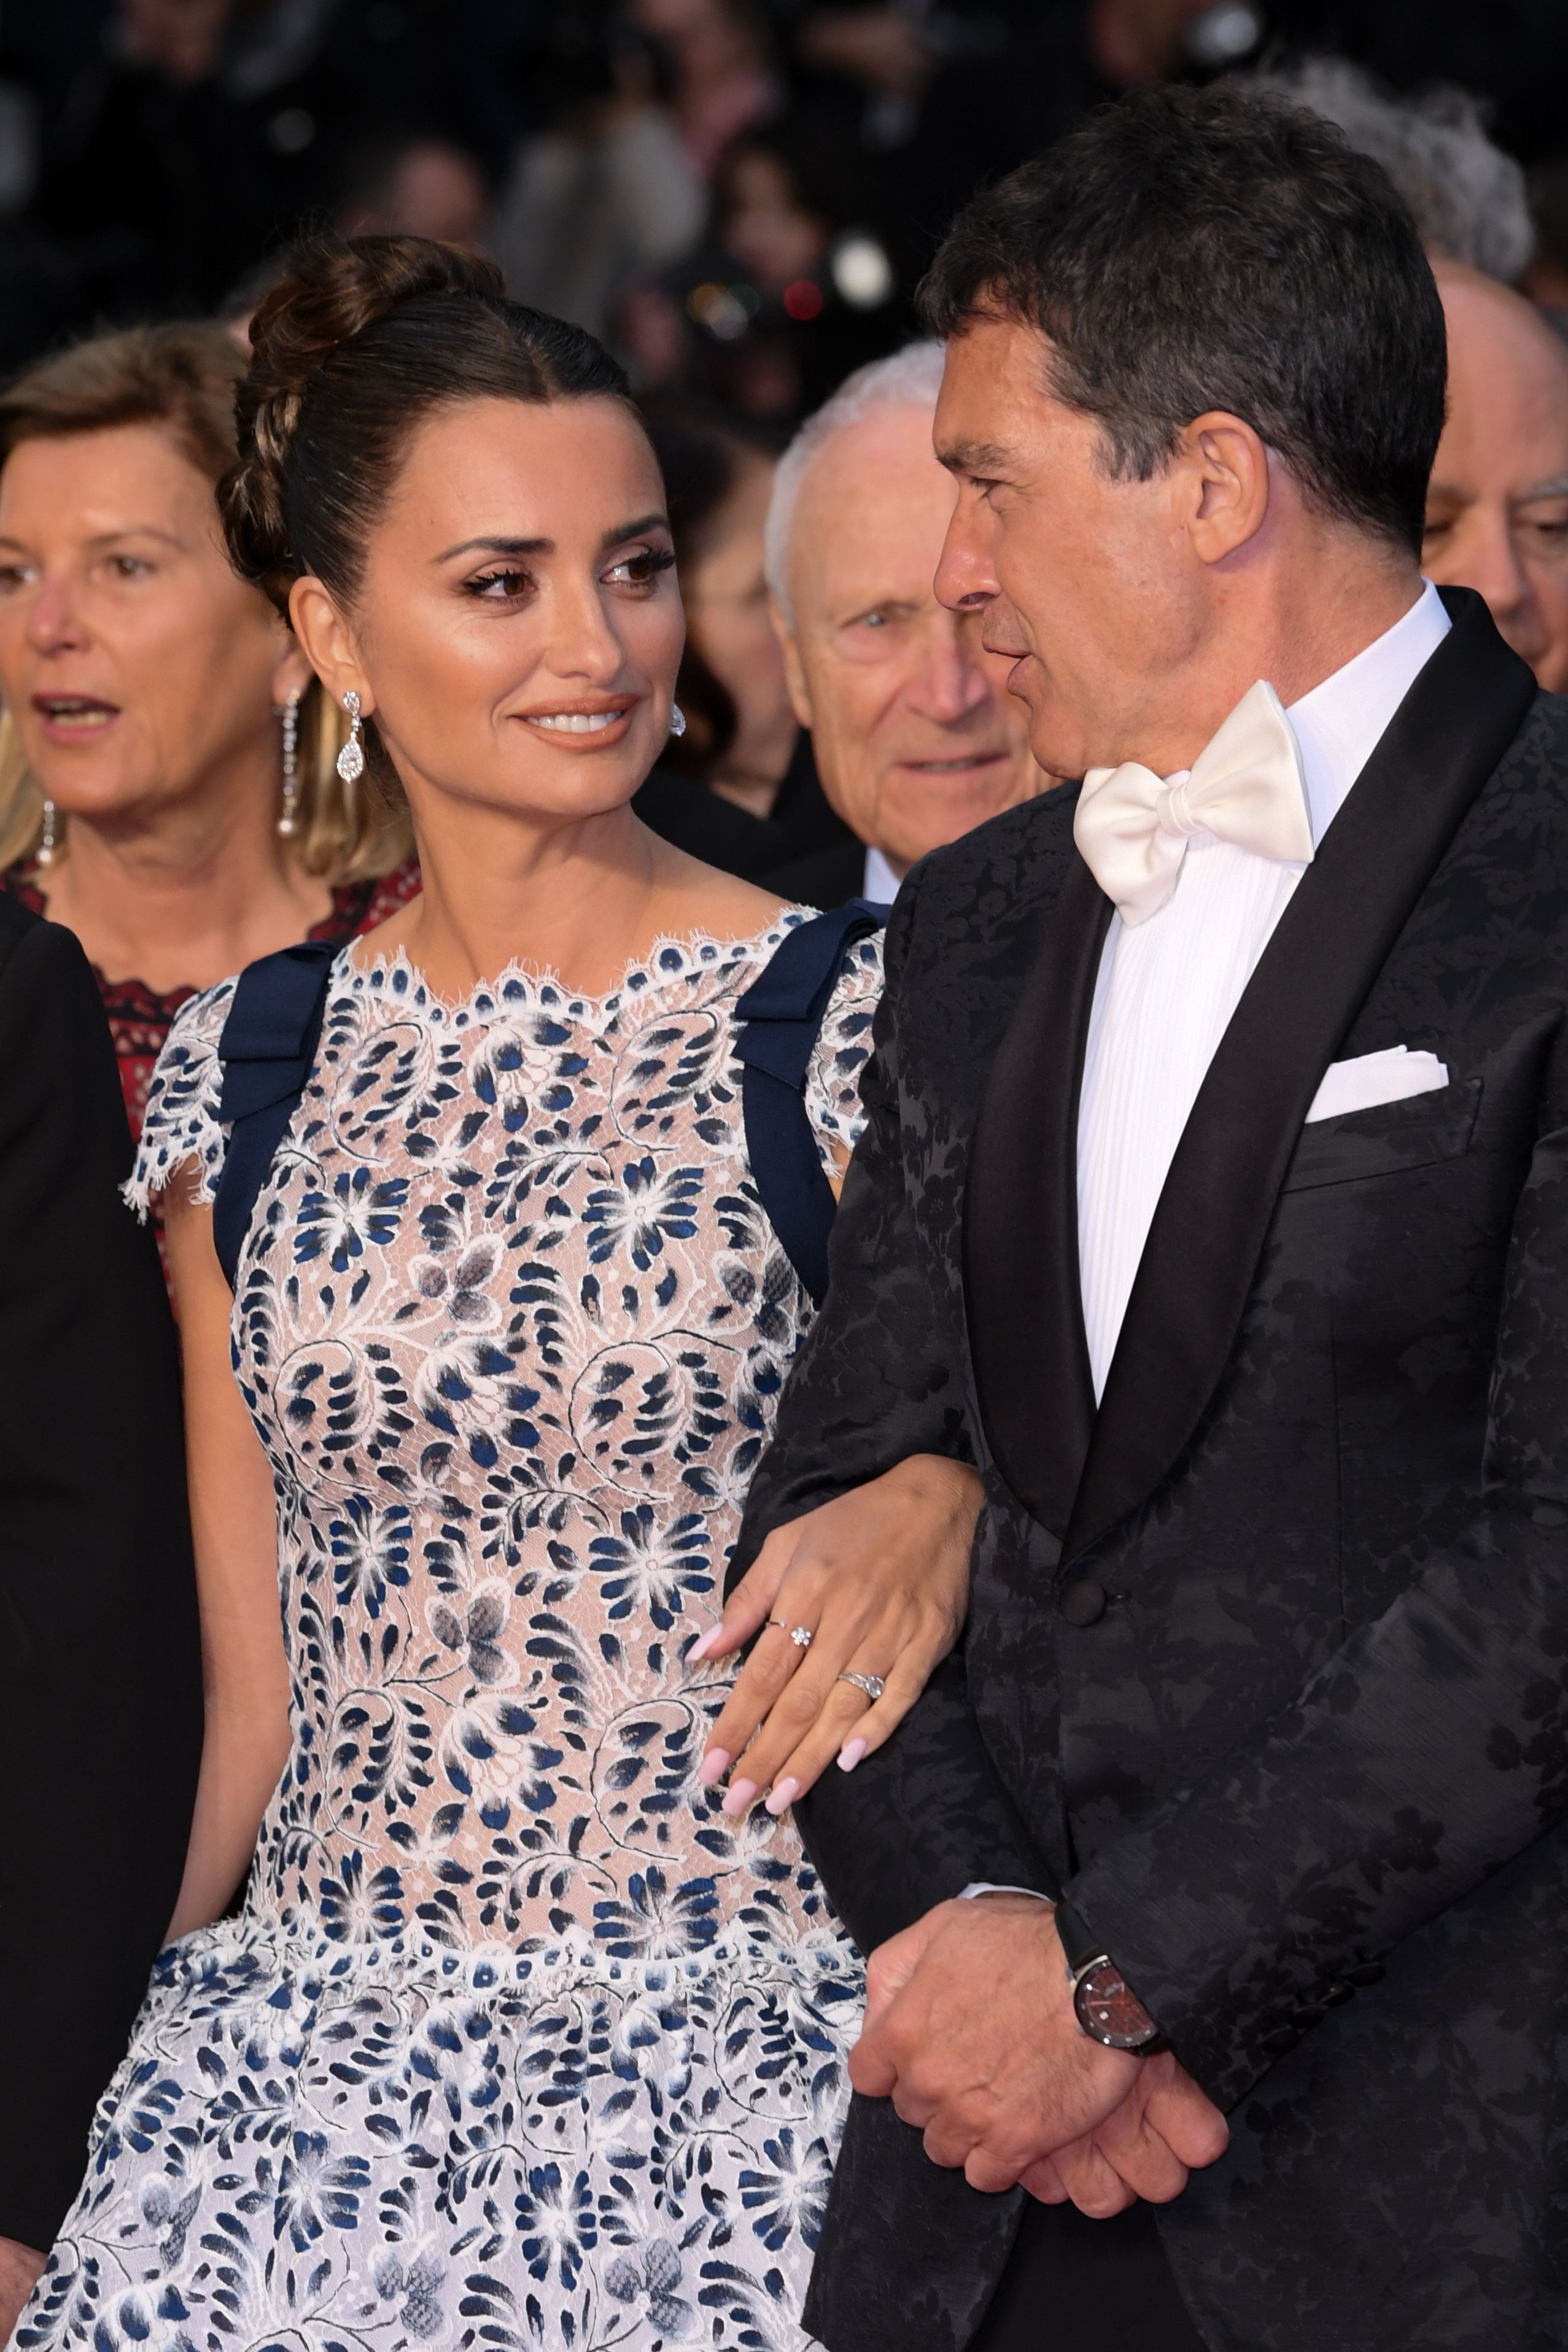 Penelope Cruz and Antonio Banderas'Pain and Glory' premiere, 72nd Cannes Film Festival, France - 17 May 2019